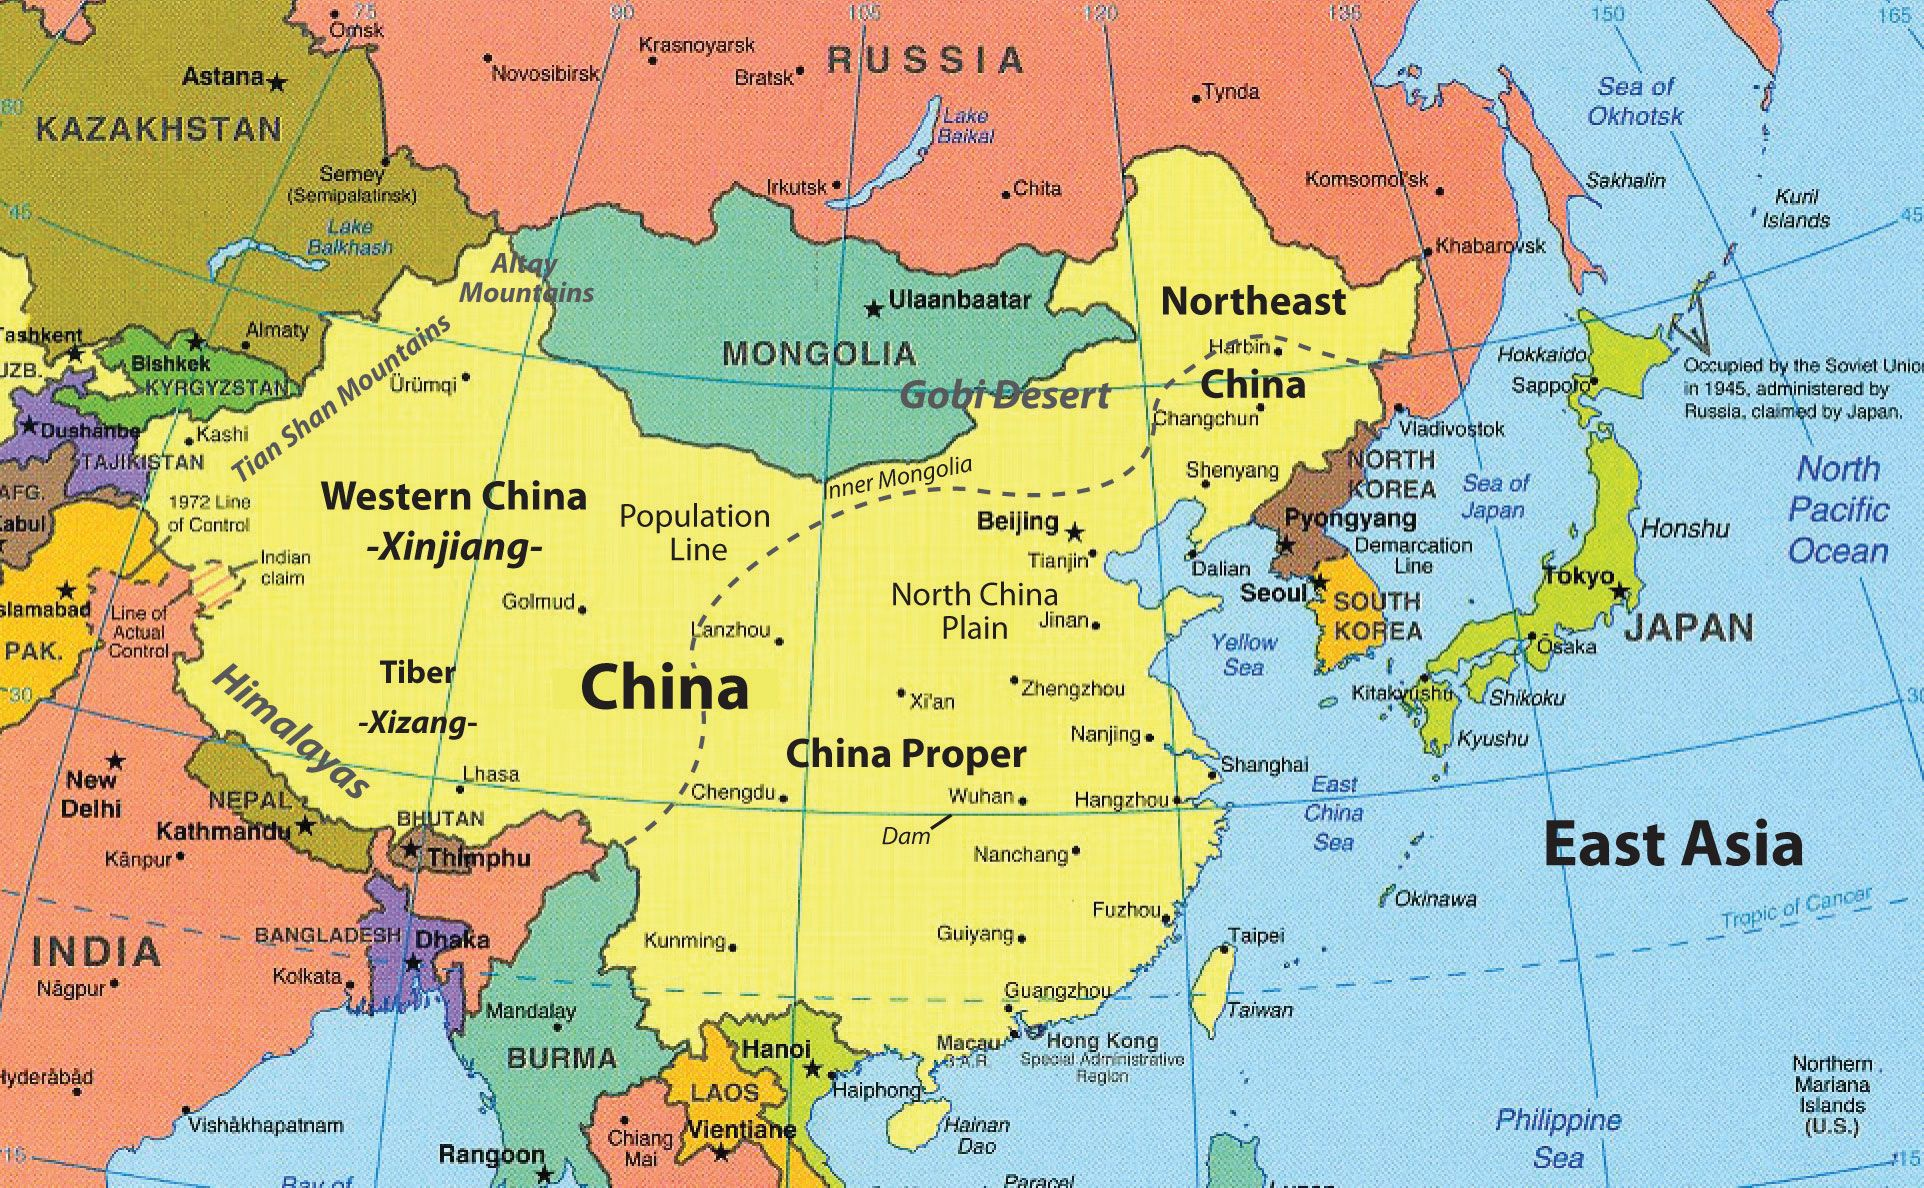 Map of East Asia. The countries are. China, Russia, Japan, North